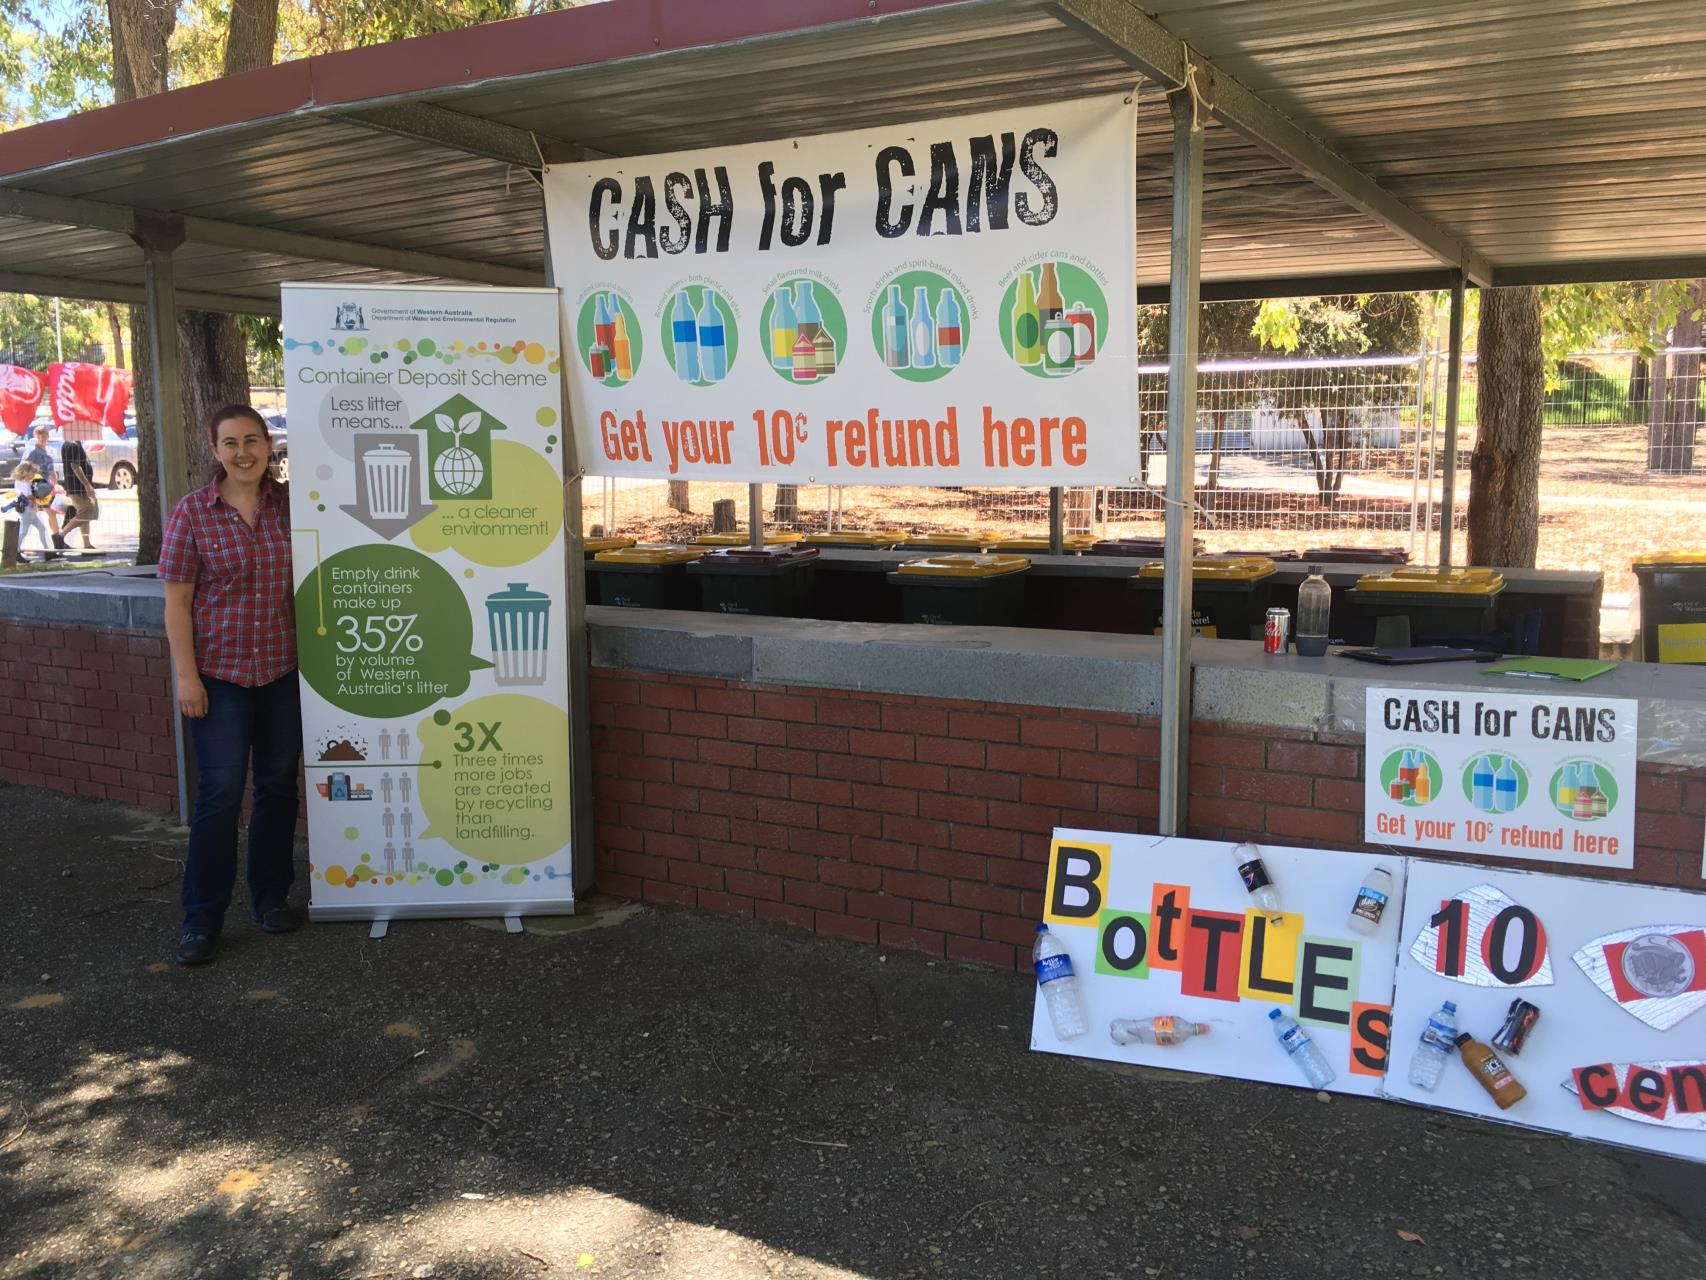 Container Deposit Scheme at Community Events EOI